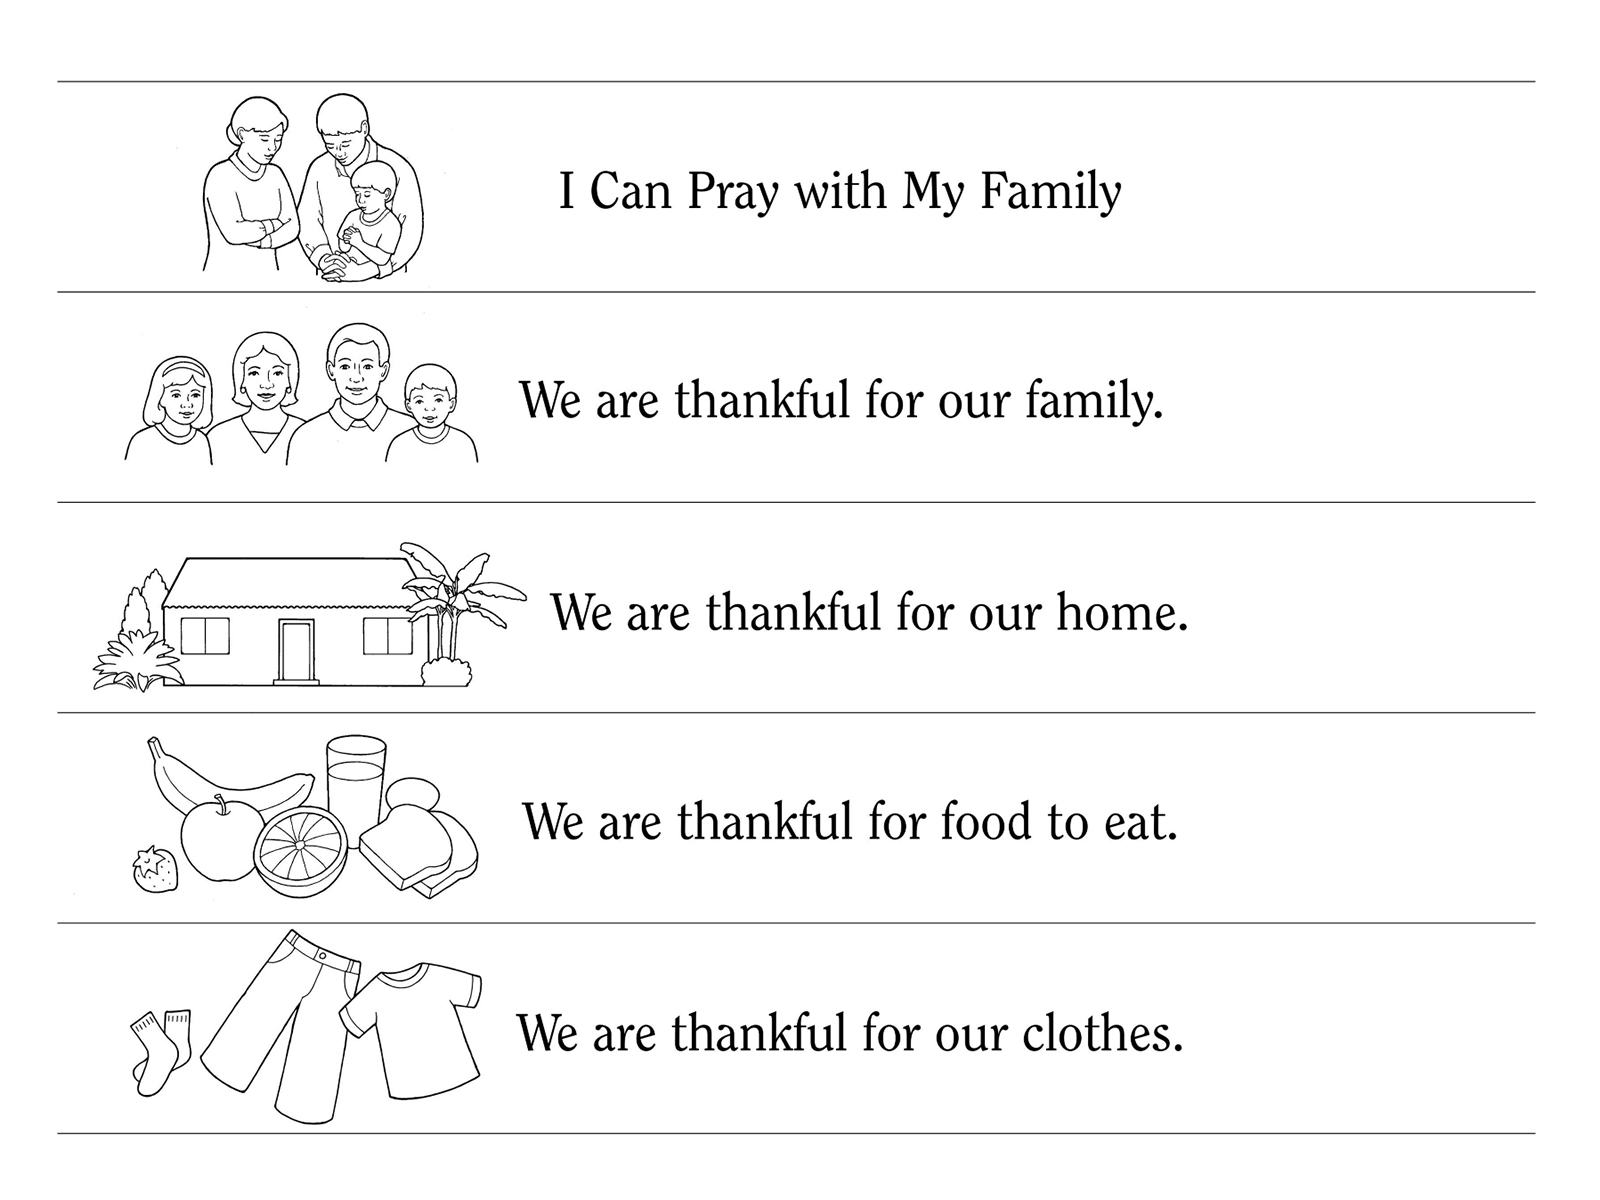 Nursery Manual Page 55 I Can Pray With My Family